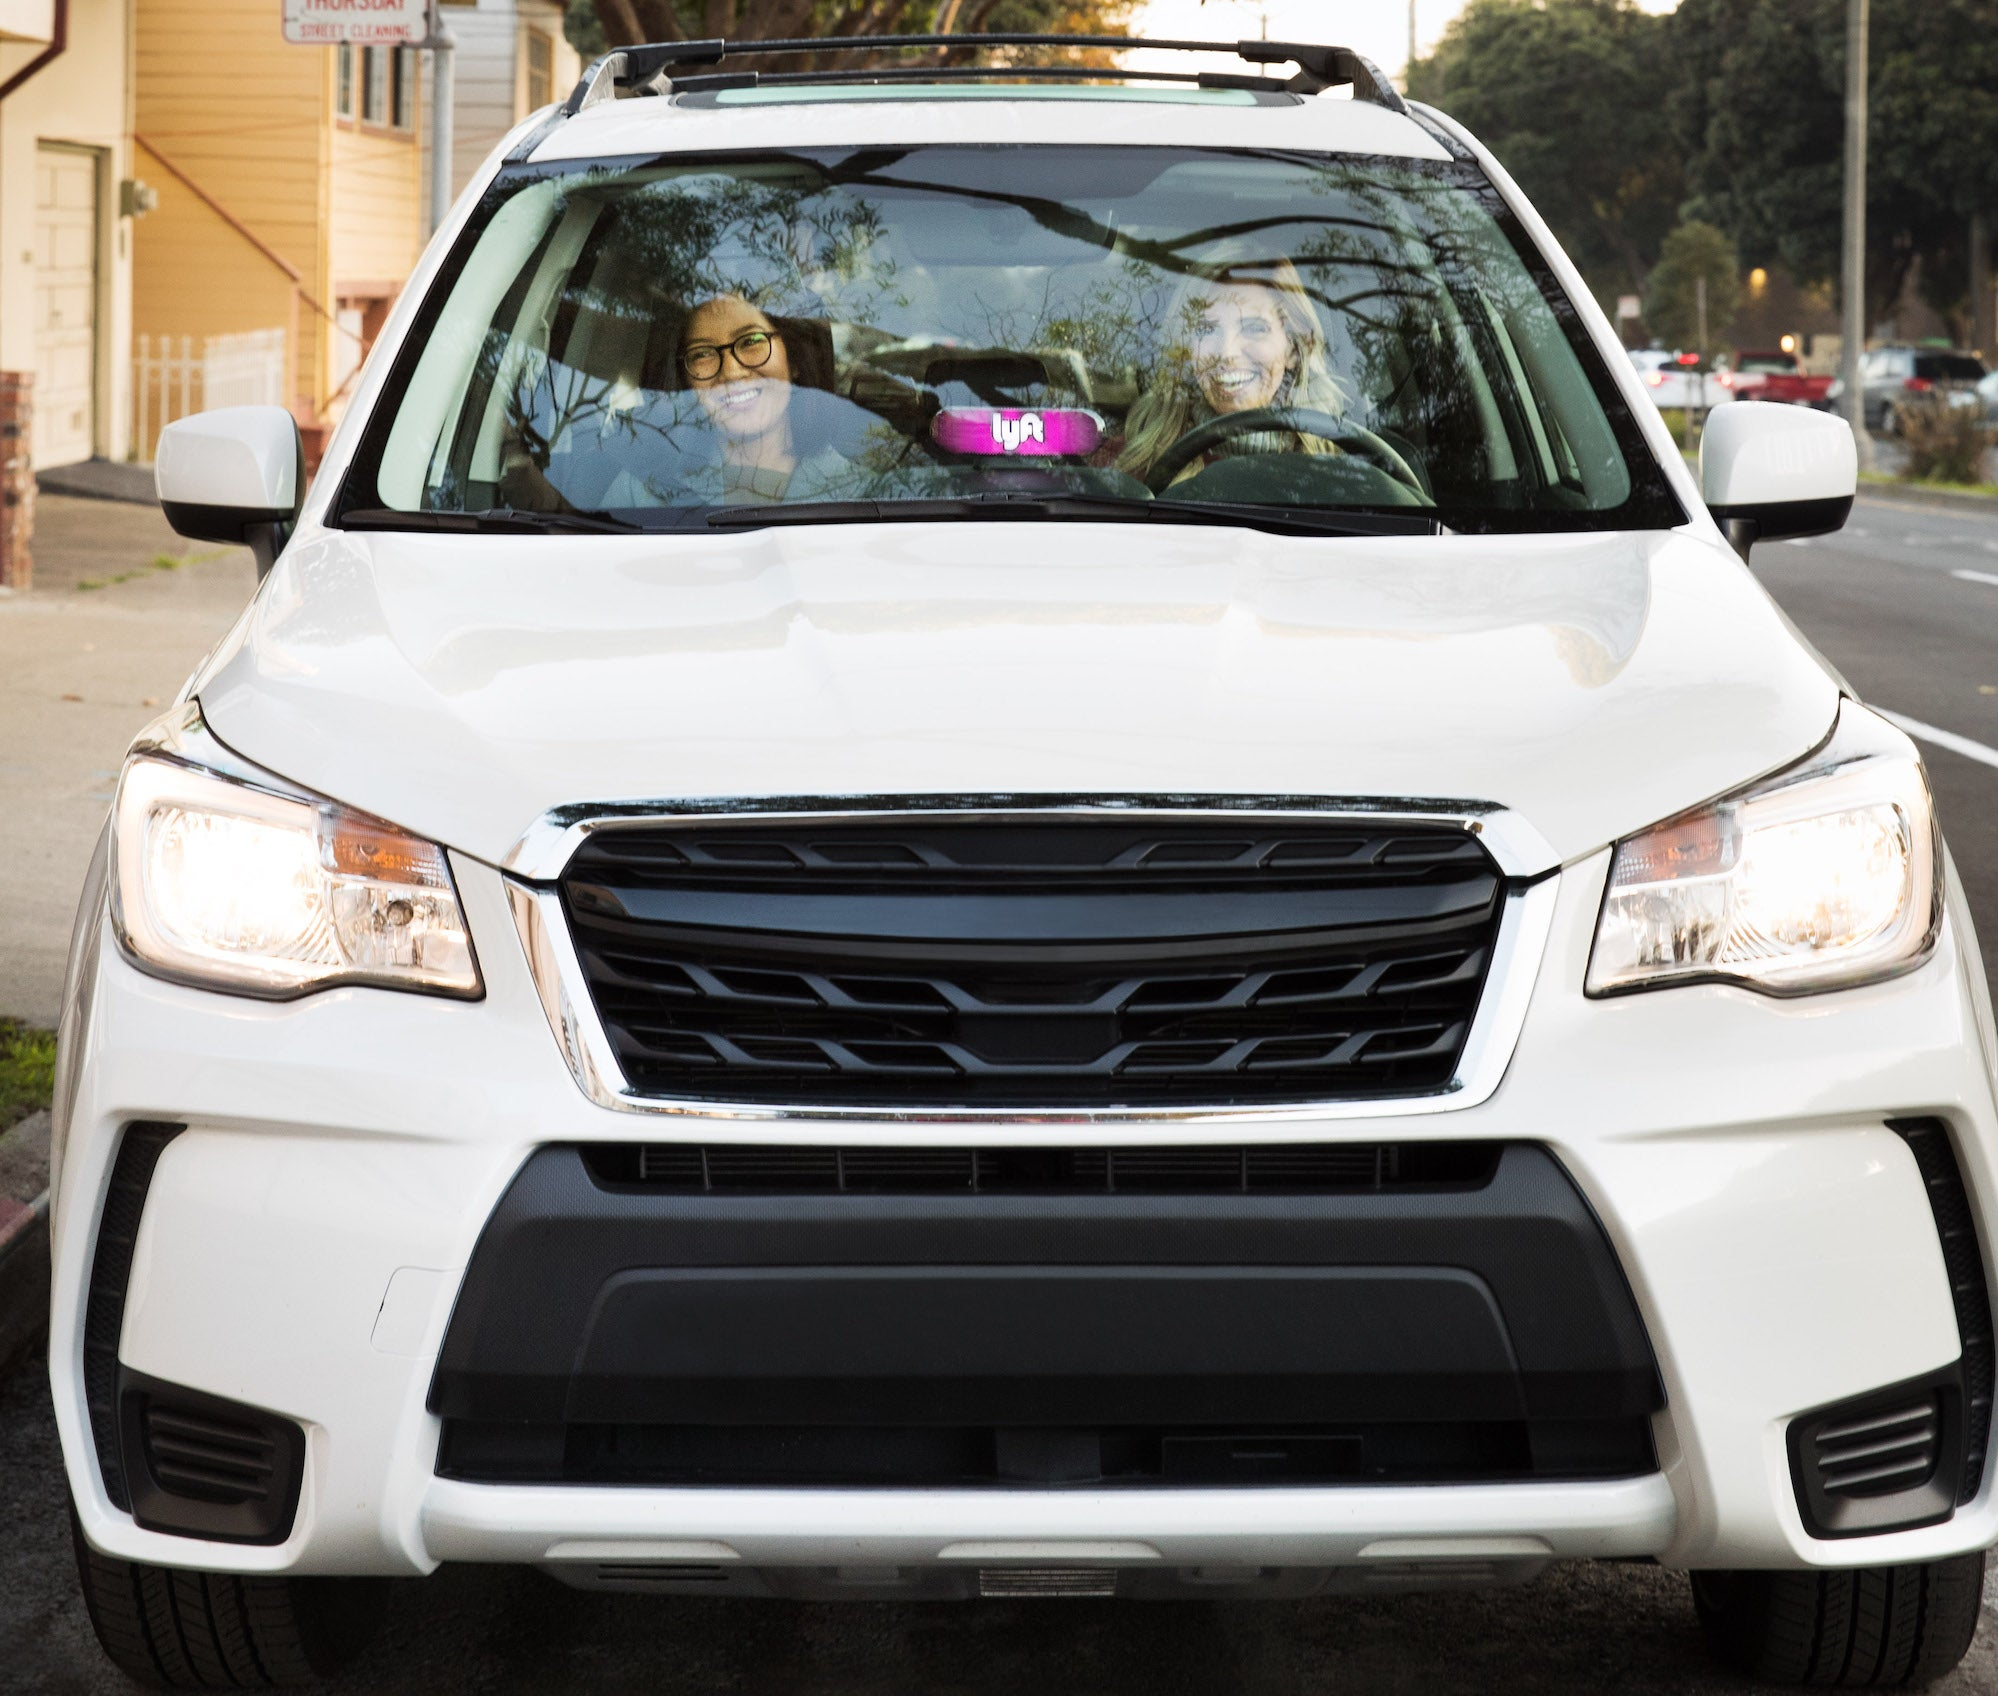 Two women sitting ina a white car.